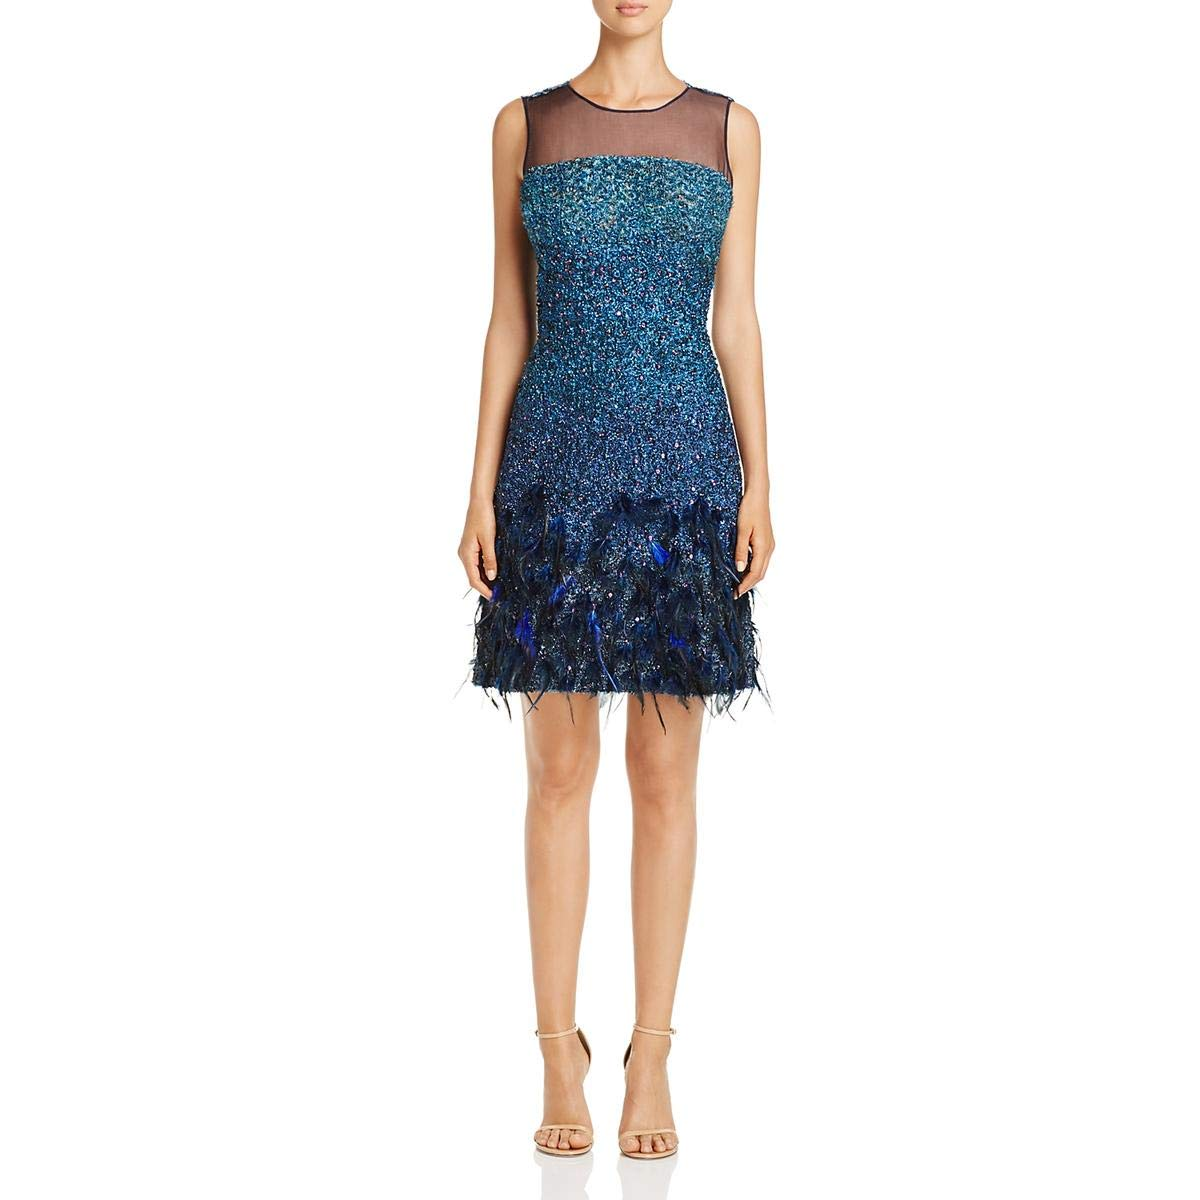 e42e812e67f Elie Tahari Womens Anabelle Embellished Feather Cocktail Dress at Amazon  Women s Clothing store